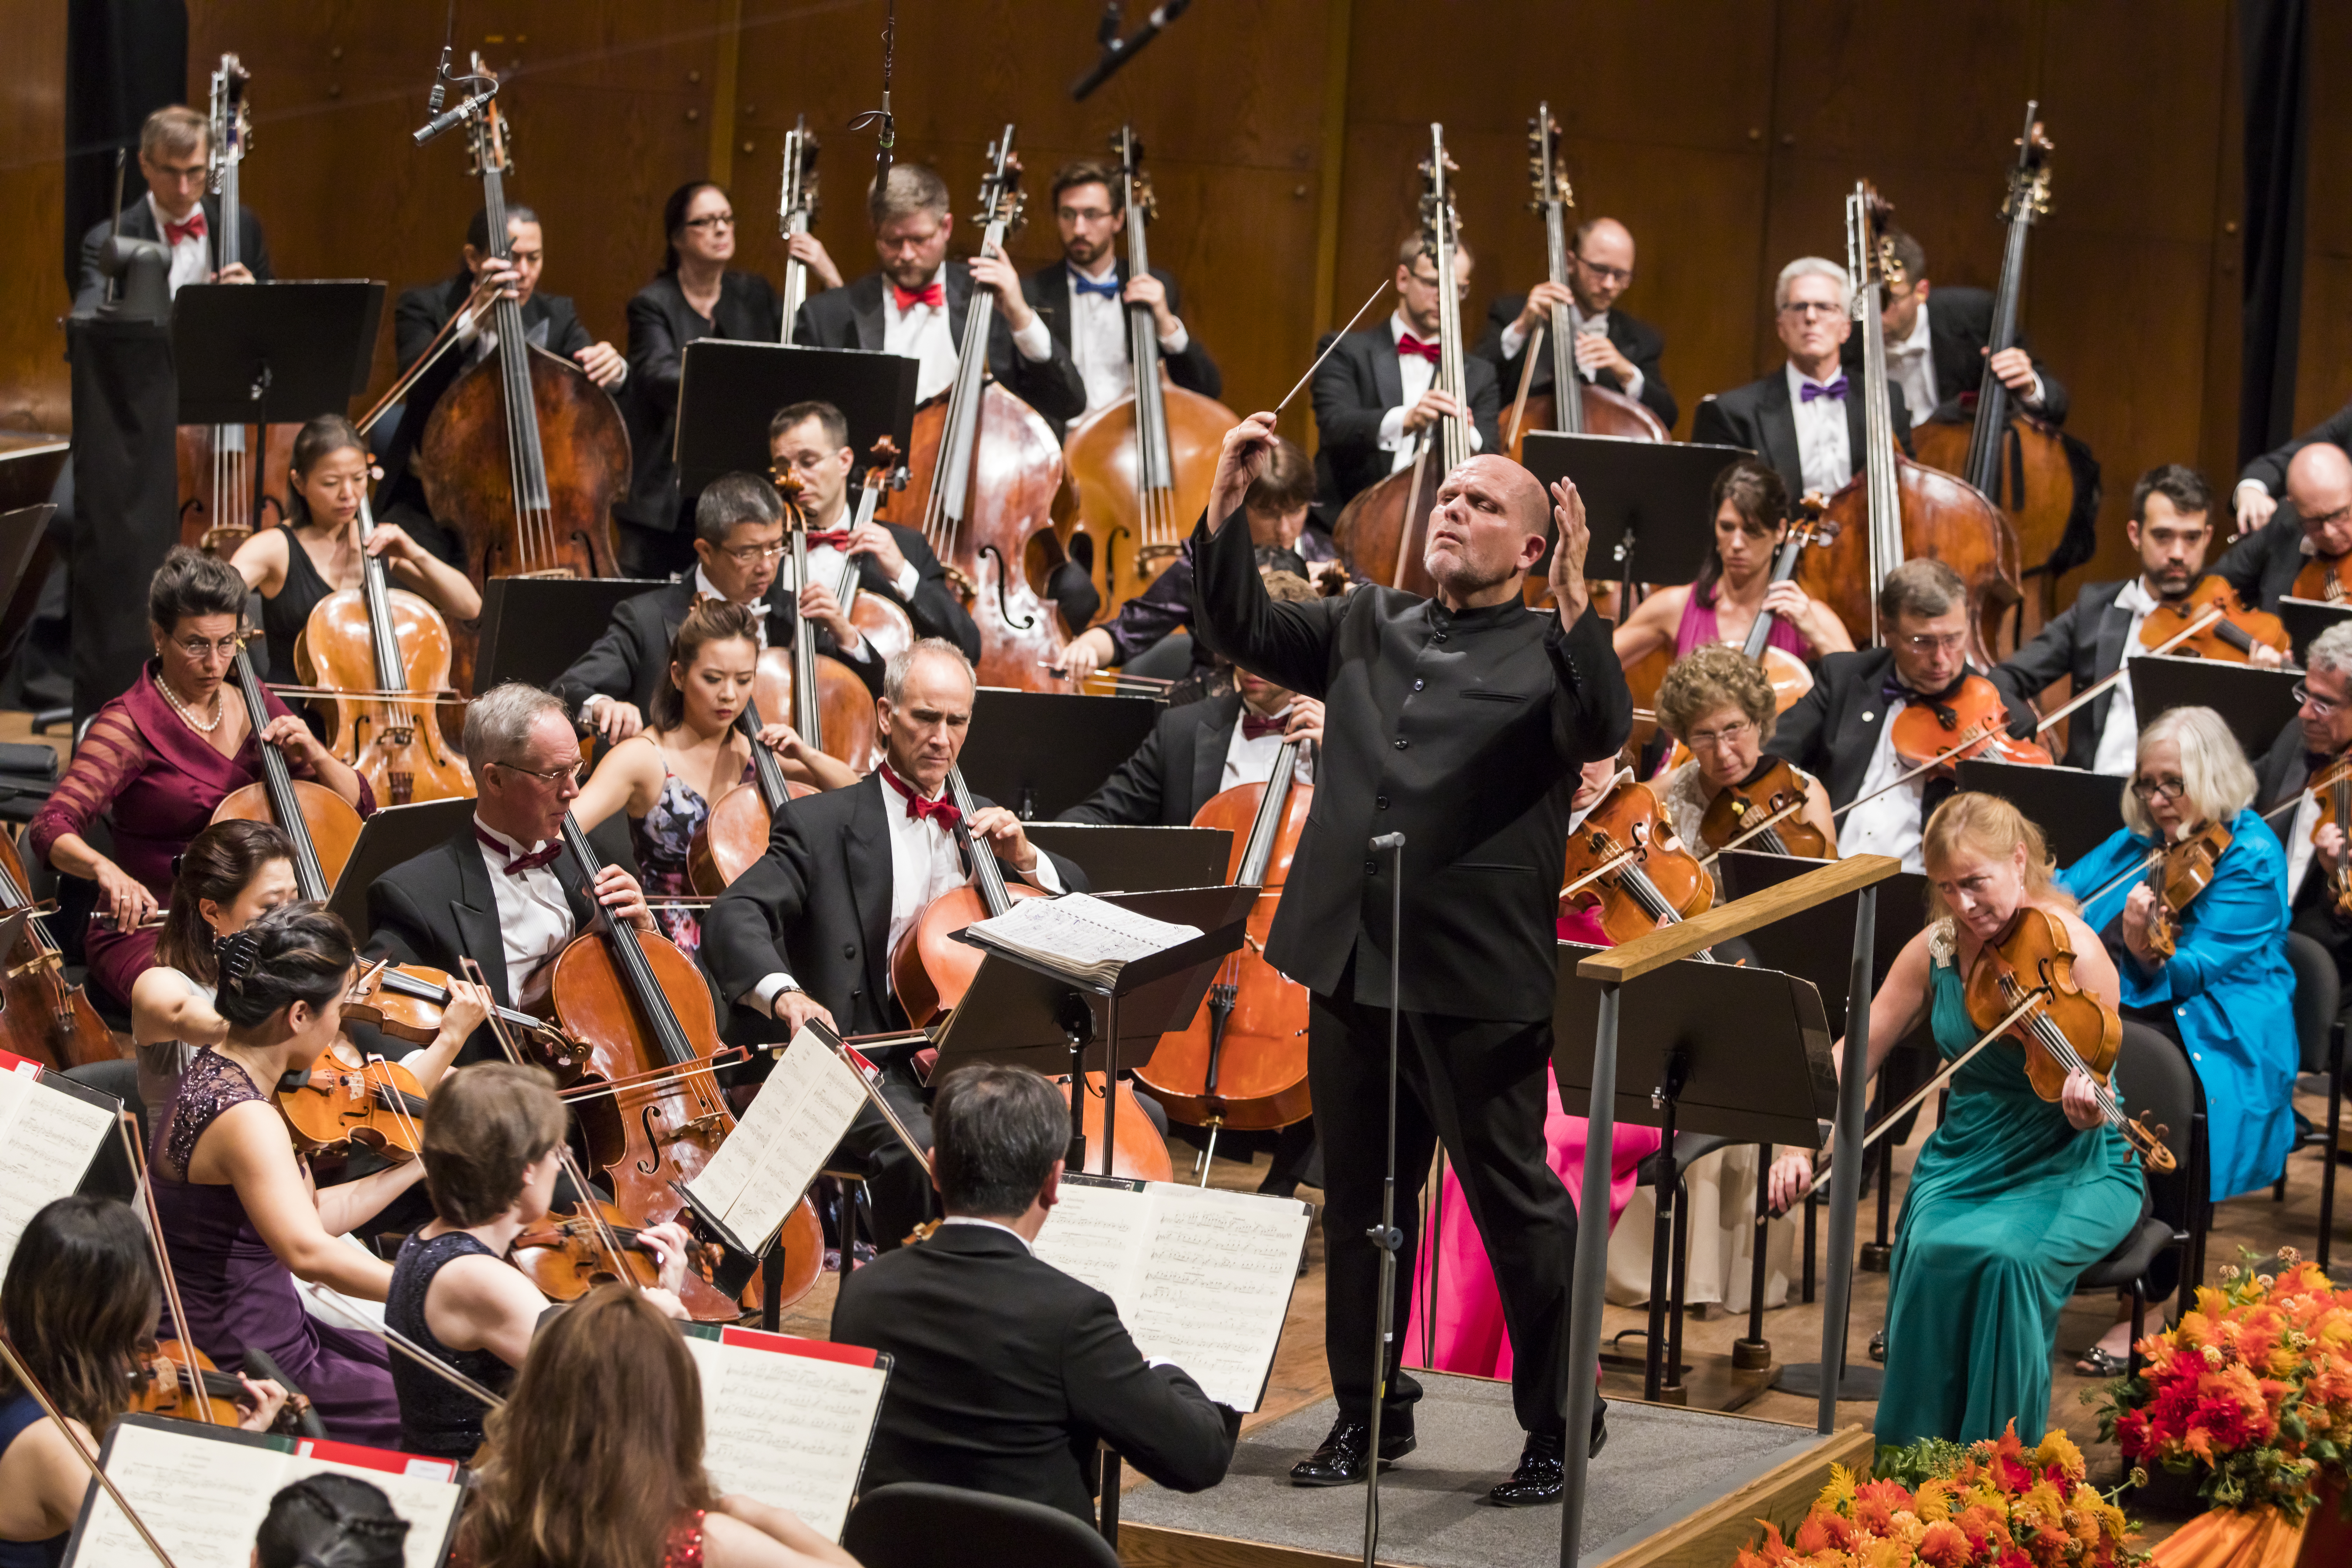 Orchestra performing on stage